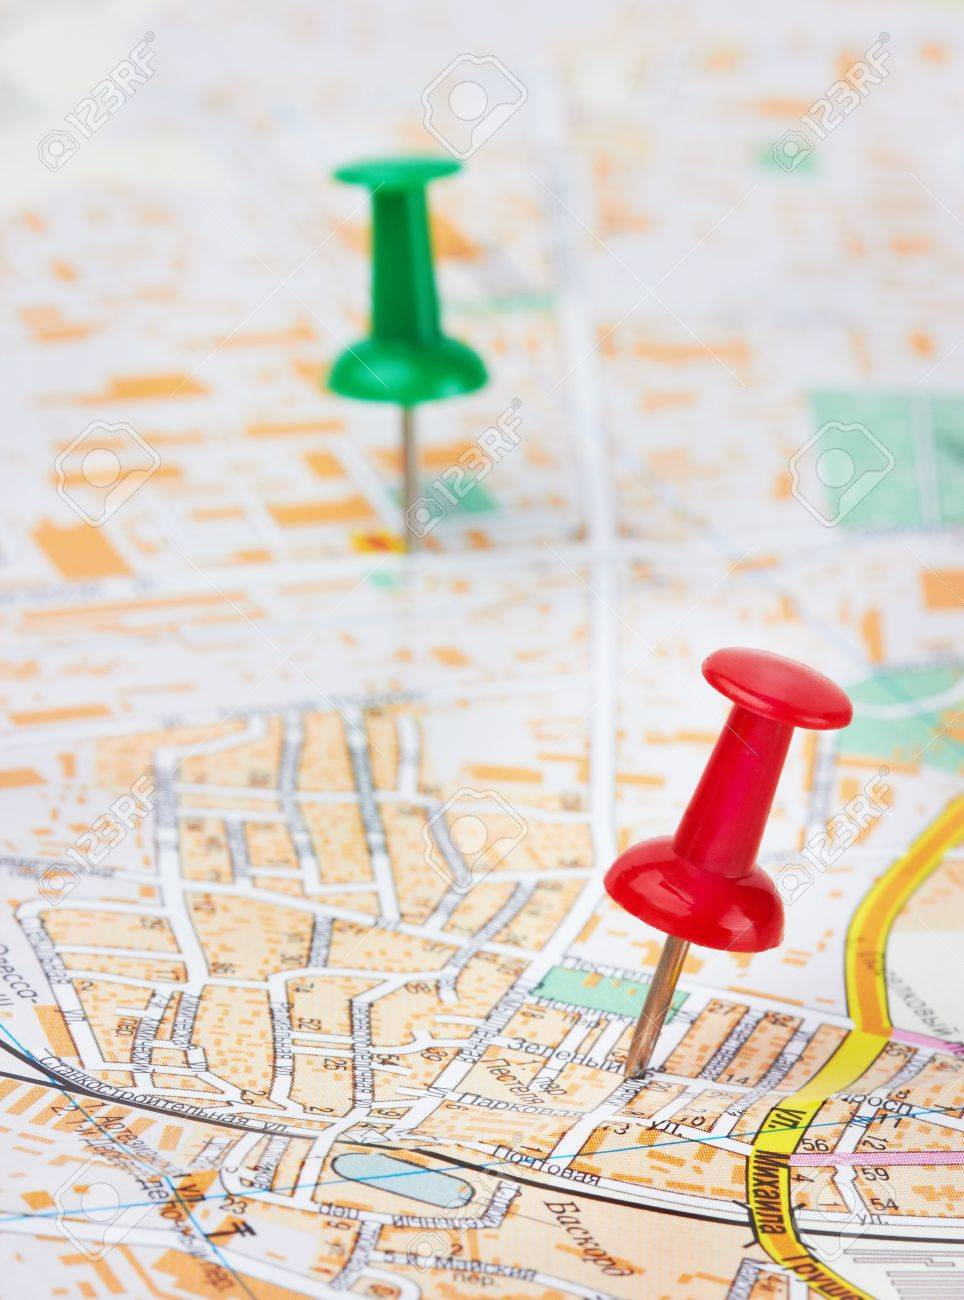 Red and green pushpin on a city map Stock Photo - 10788101